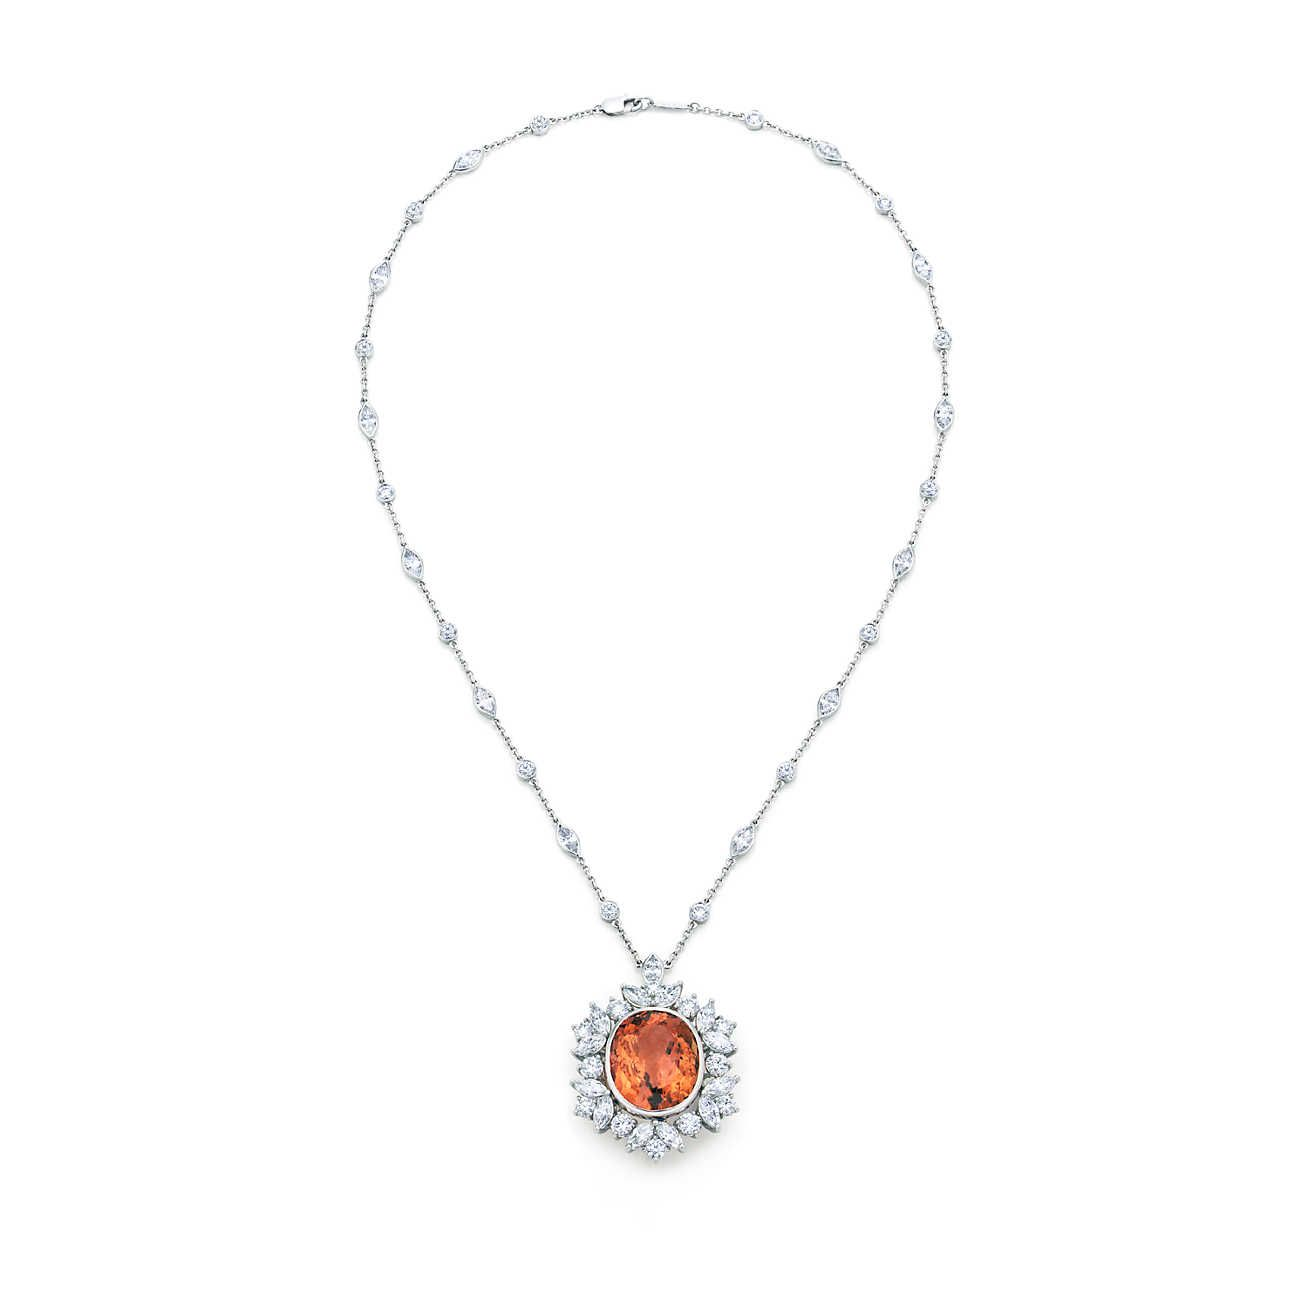 Imperial topaz necklace imperial topaz topaz and pendants imperial topaz necklace aloadofball Image collections